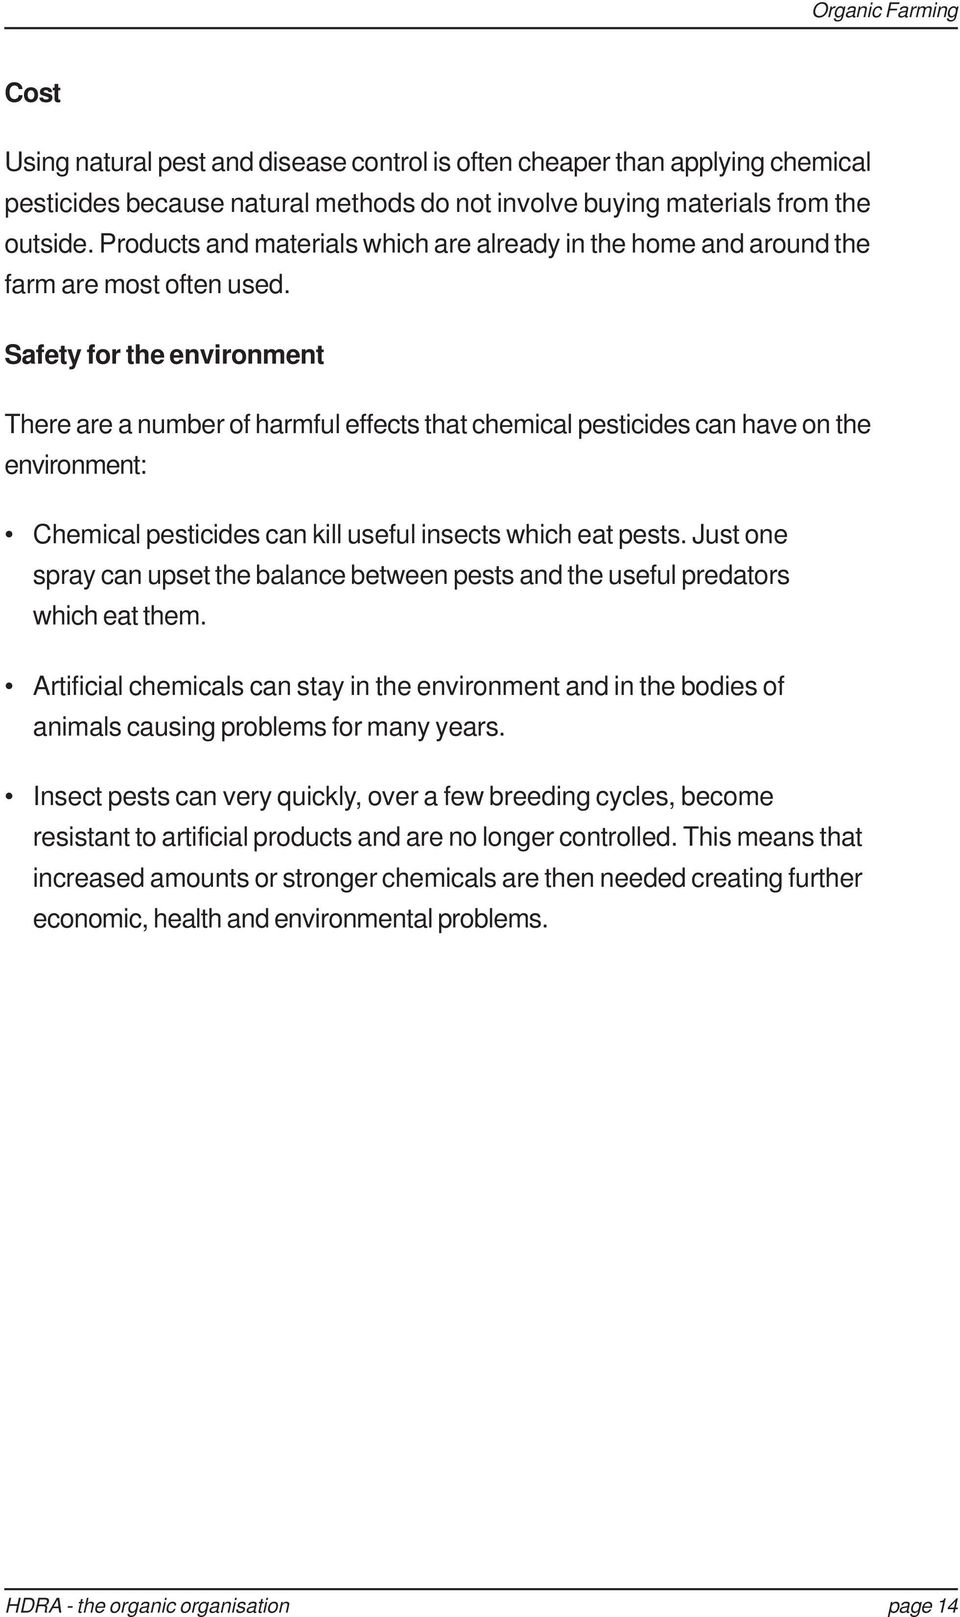 Safety for the environment There are a number of harmful effects that chemical pesticides can have on the environment: Chemical pesticides can kill useful insects which eat pests.